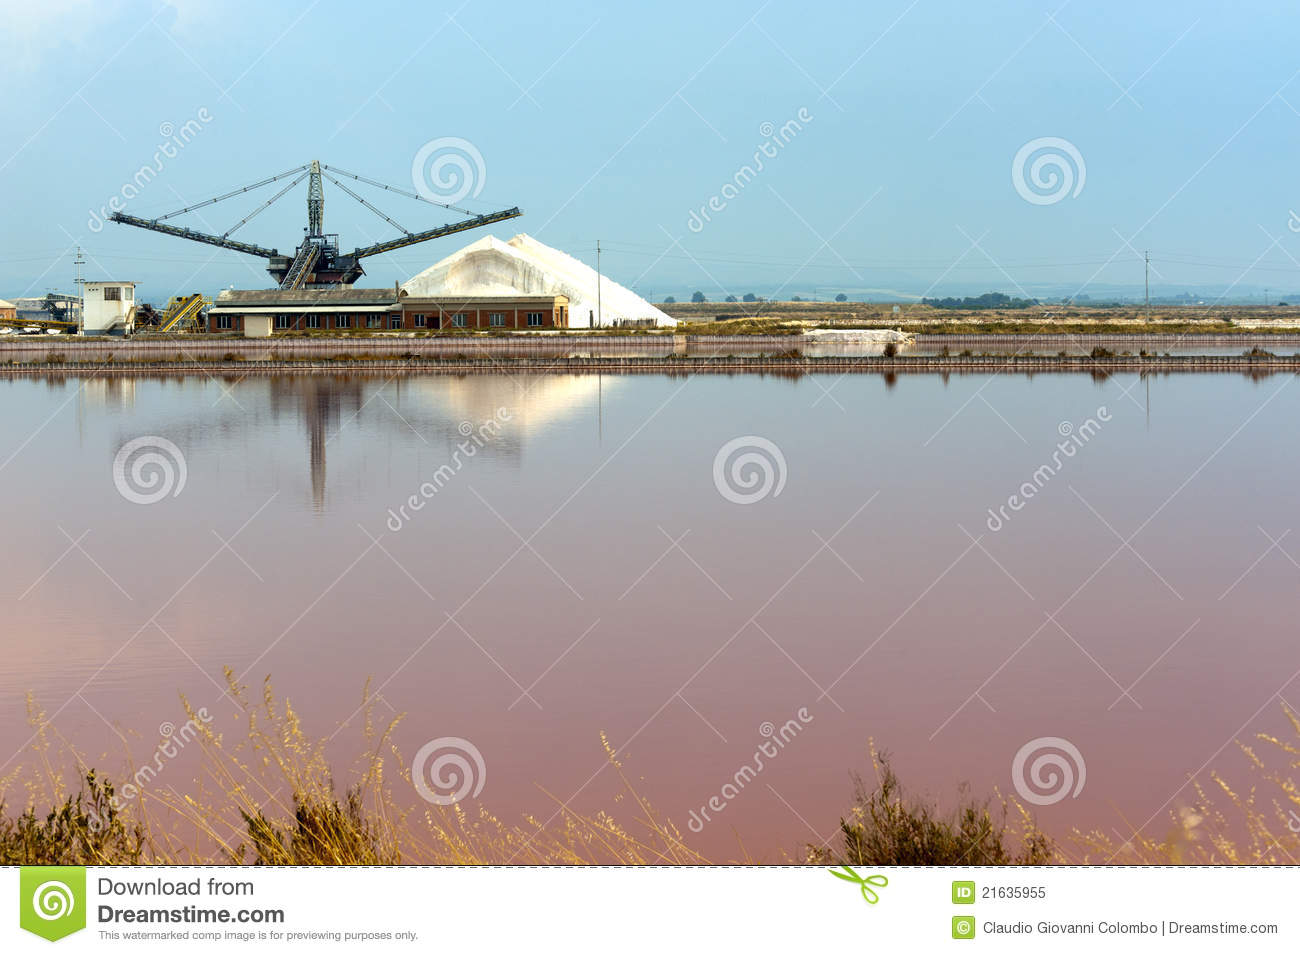 Salt evaporation pond royalty free stock photo image for Design of evaporation pond